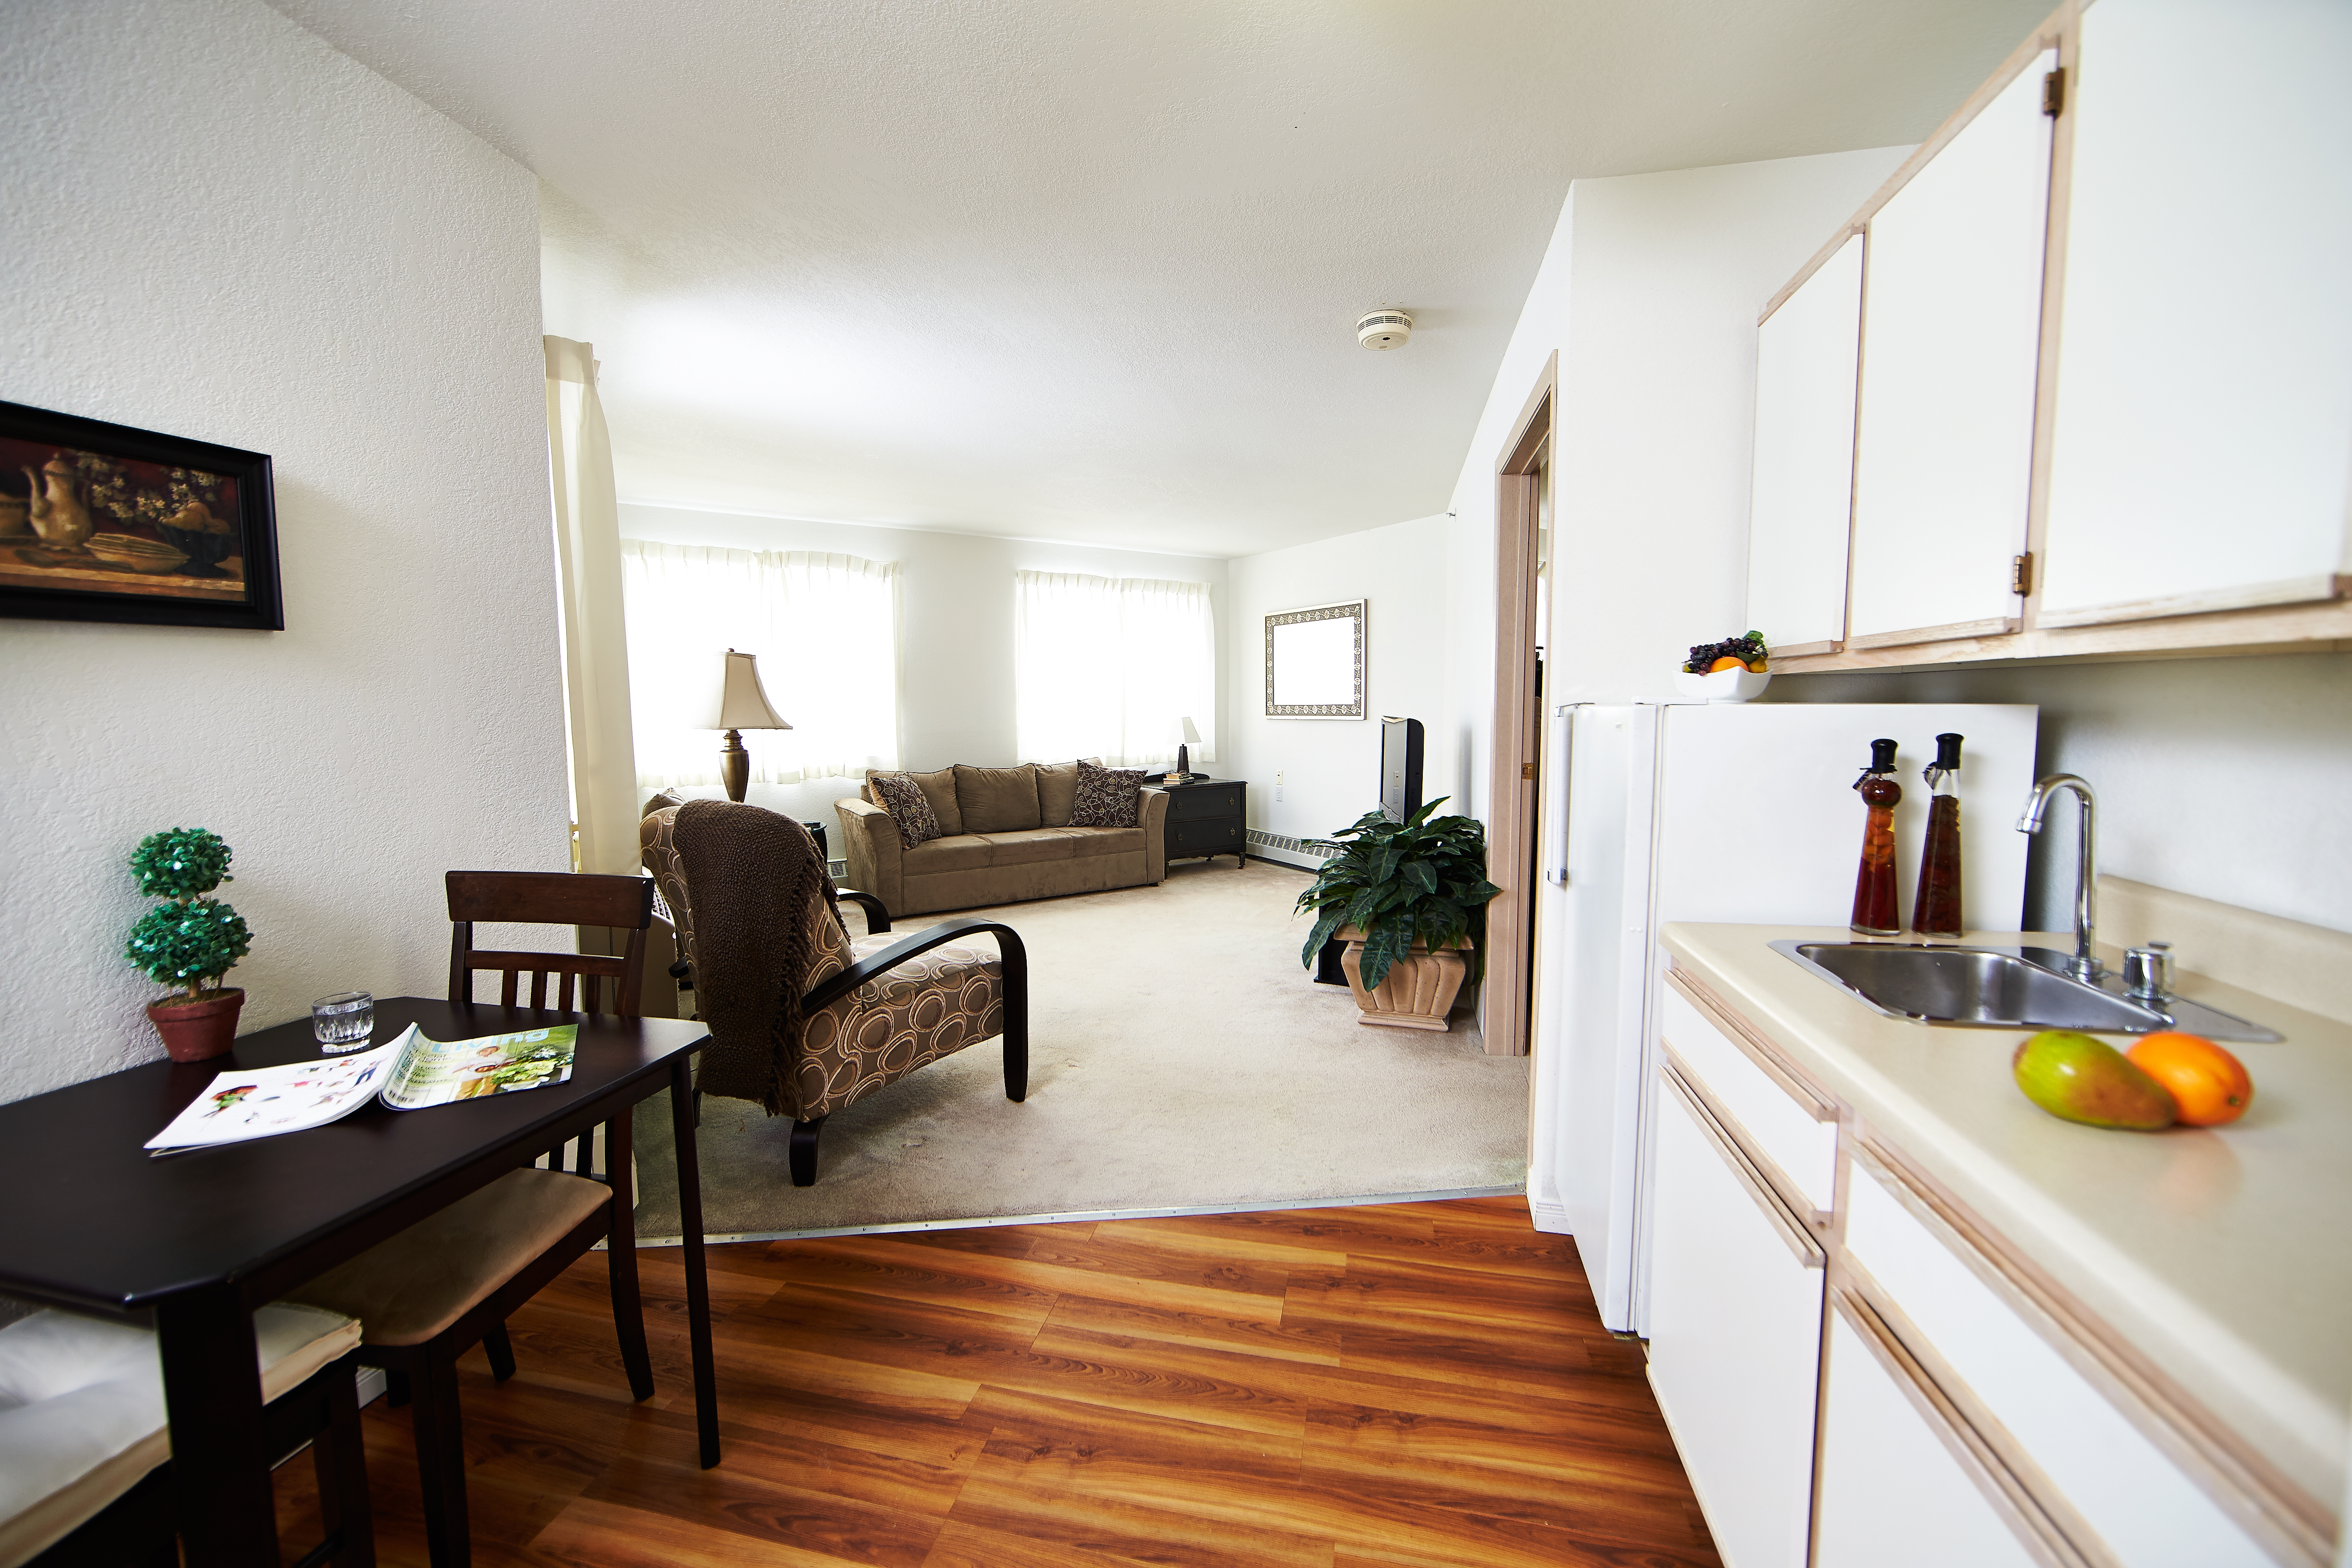 Image of a suite at Kensington Court Retirement Residence in Windsor